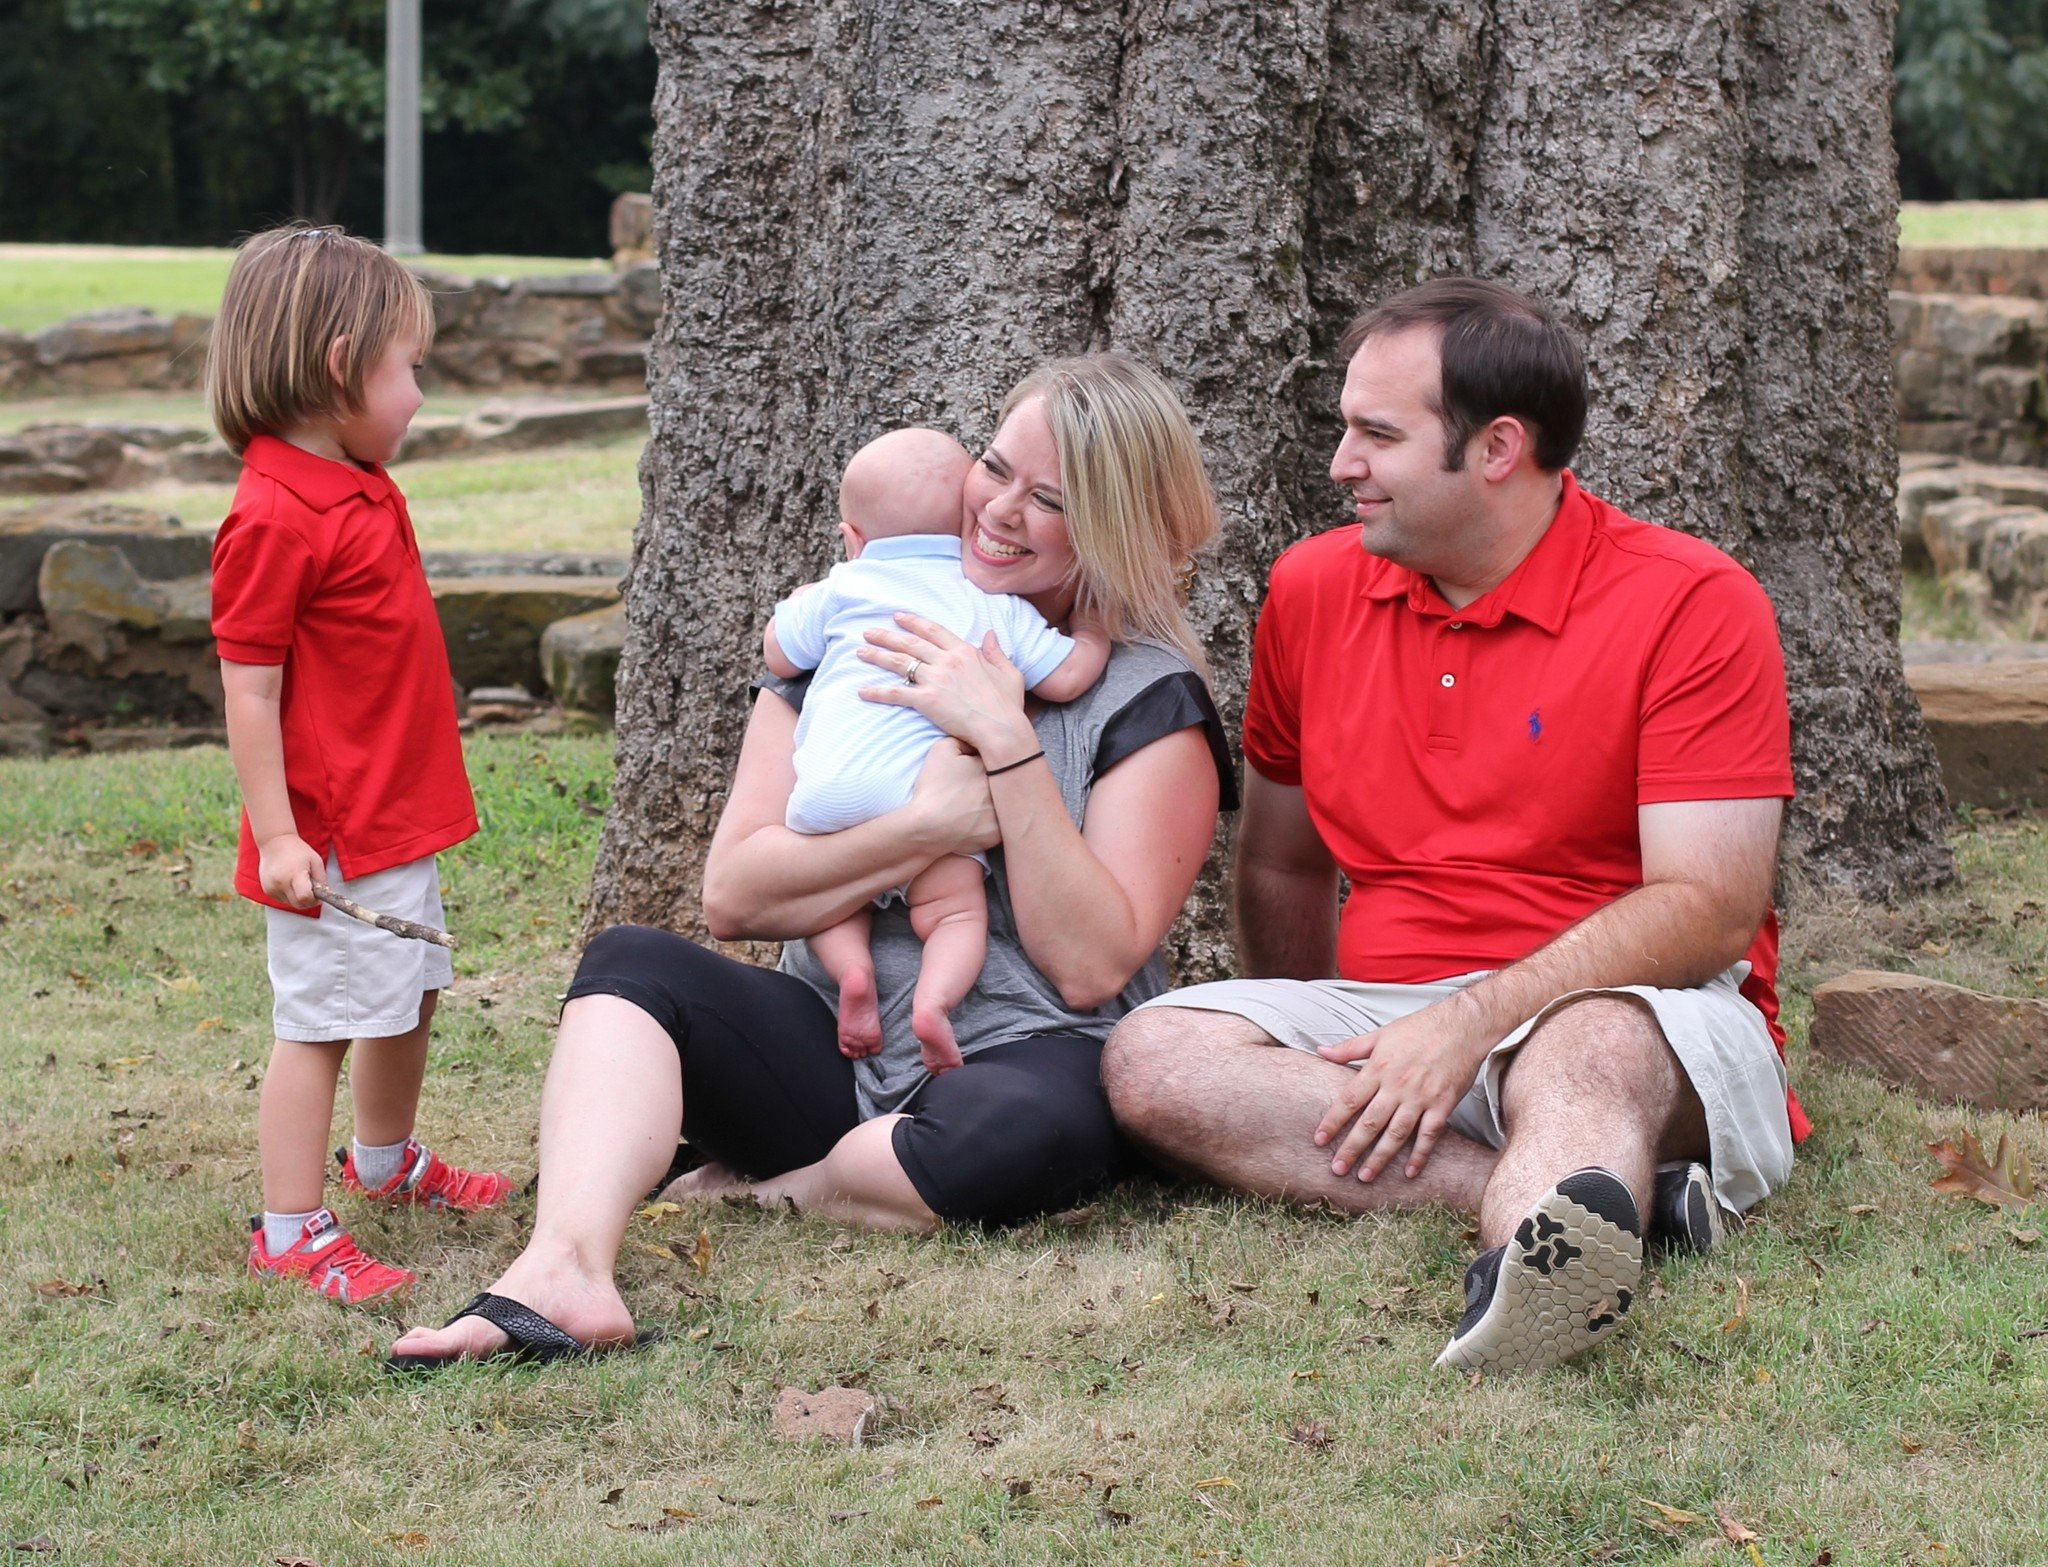 Stephanie Hicks with her husband William and their children.